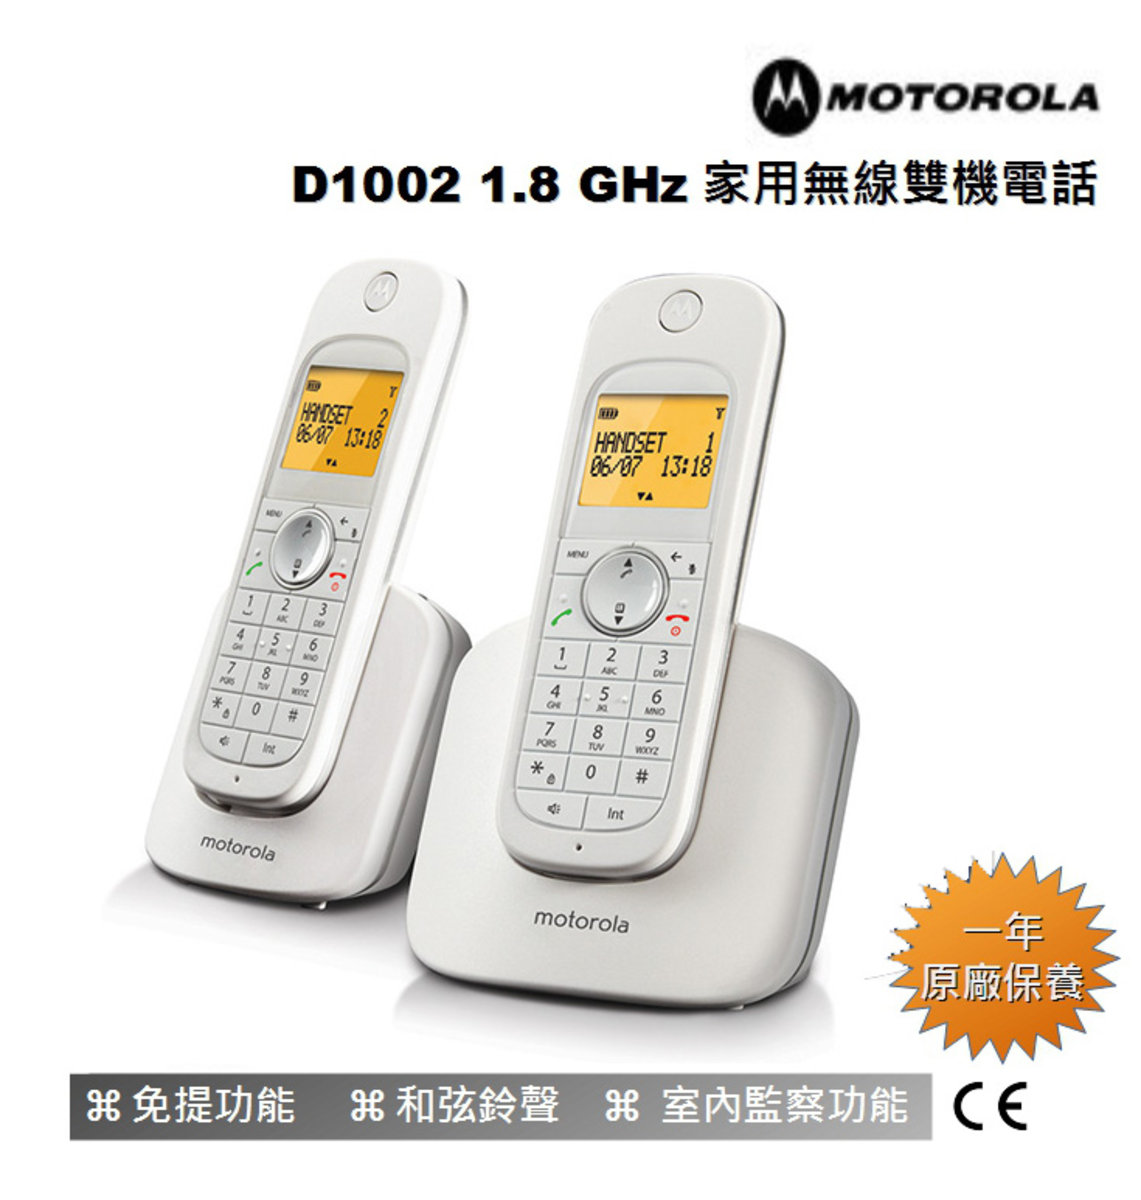 1.8Ghz DECT Cordless Phone MOT-D1002 White